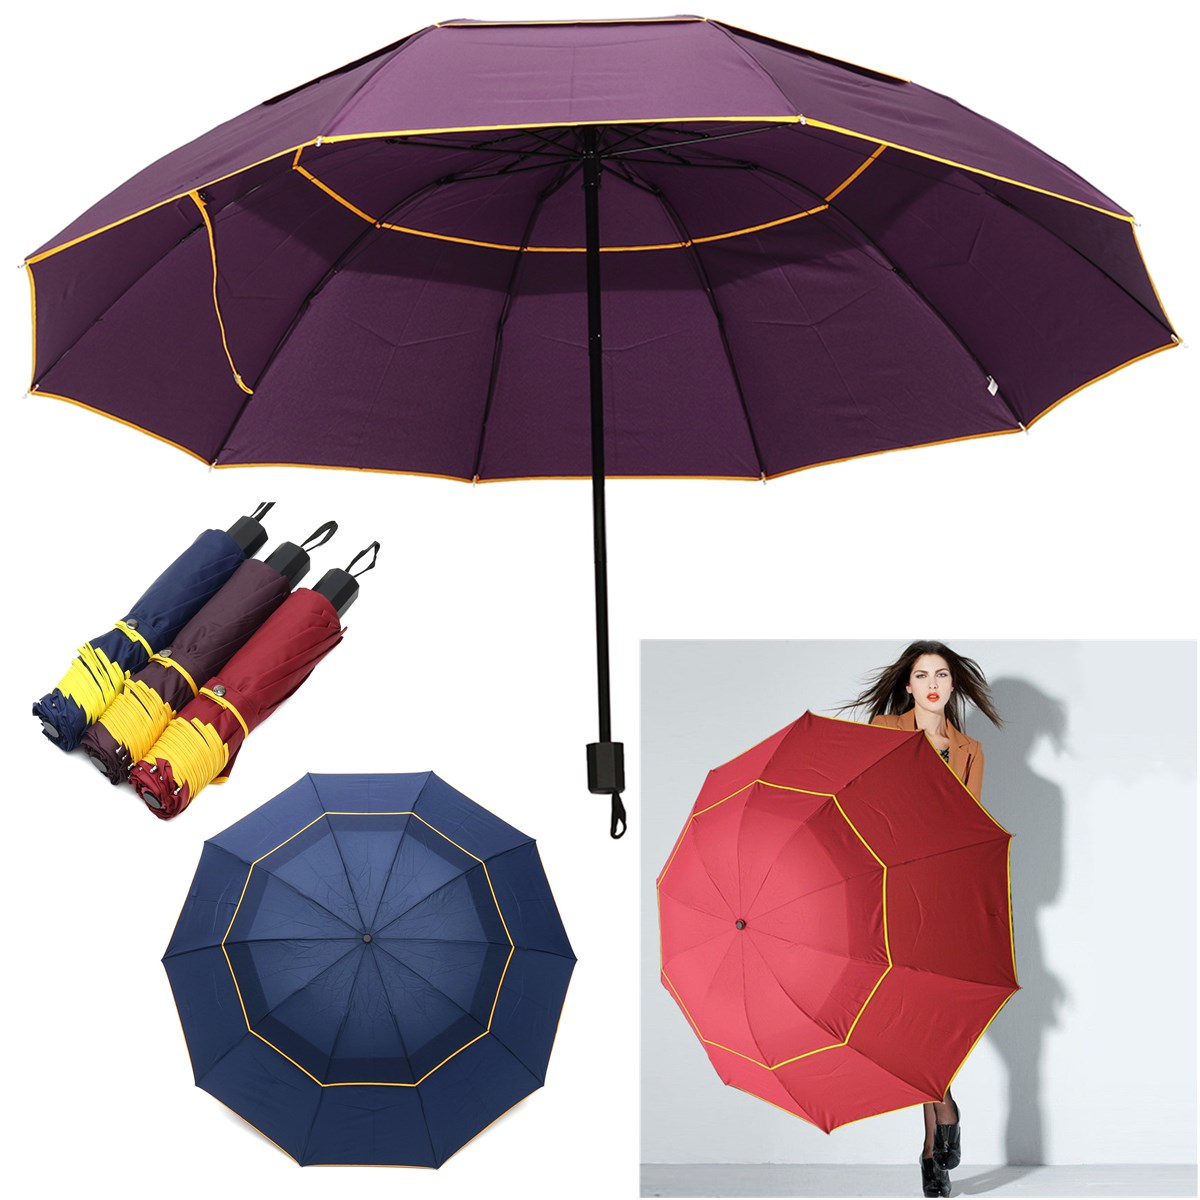 Waterproof Anti-UV <font><b>Umbrella</b></font> Rain Sunshade2-3 People Outdoor 3 Folding <font><b>Umbrella</b></font> 130cm <font><b>Big</b></font> Windproof <font><b>Umbrellas</b></font> Rain Men Women image